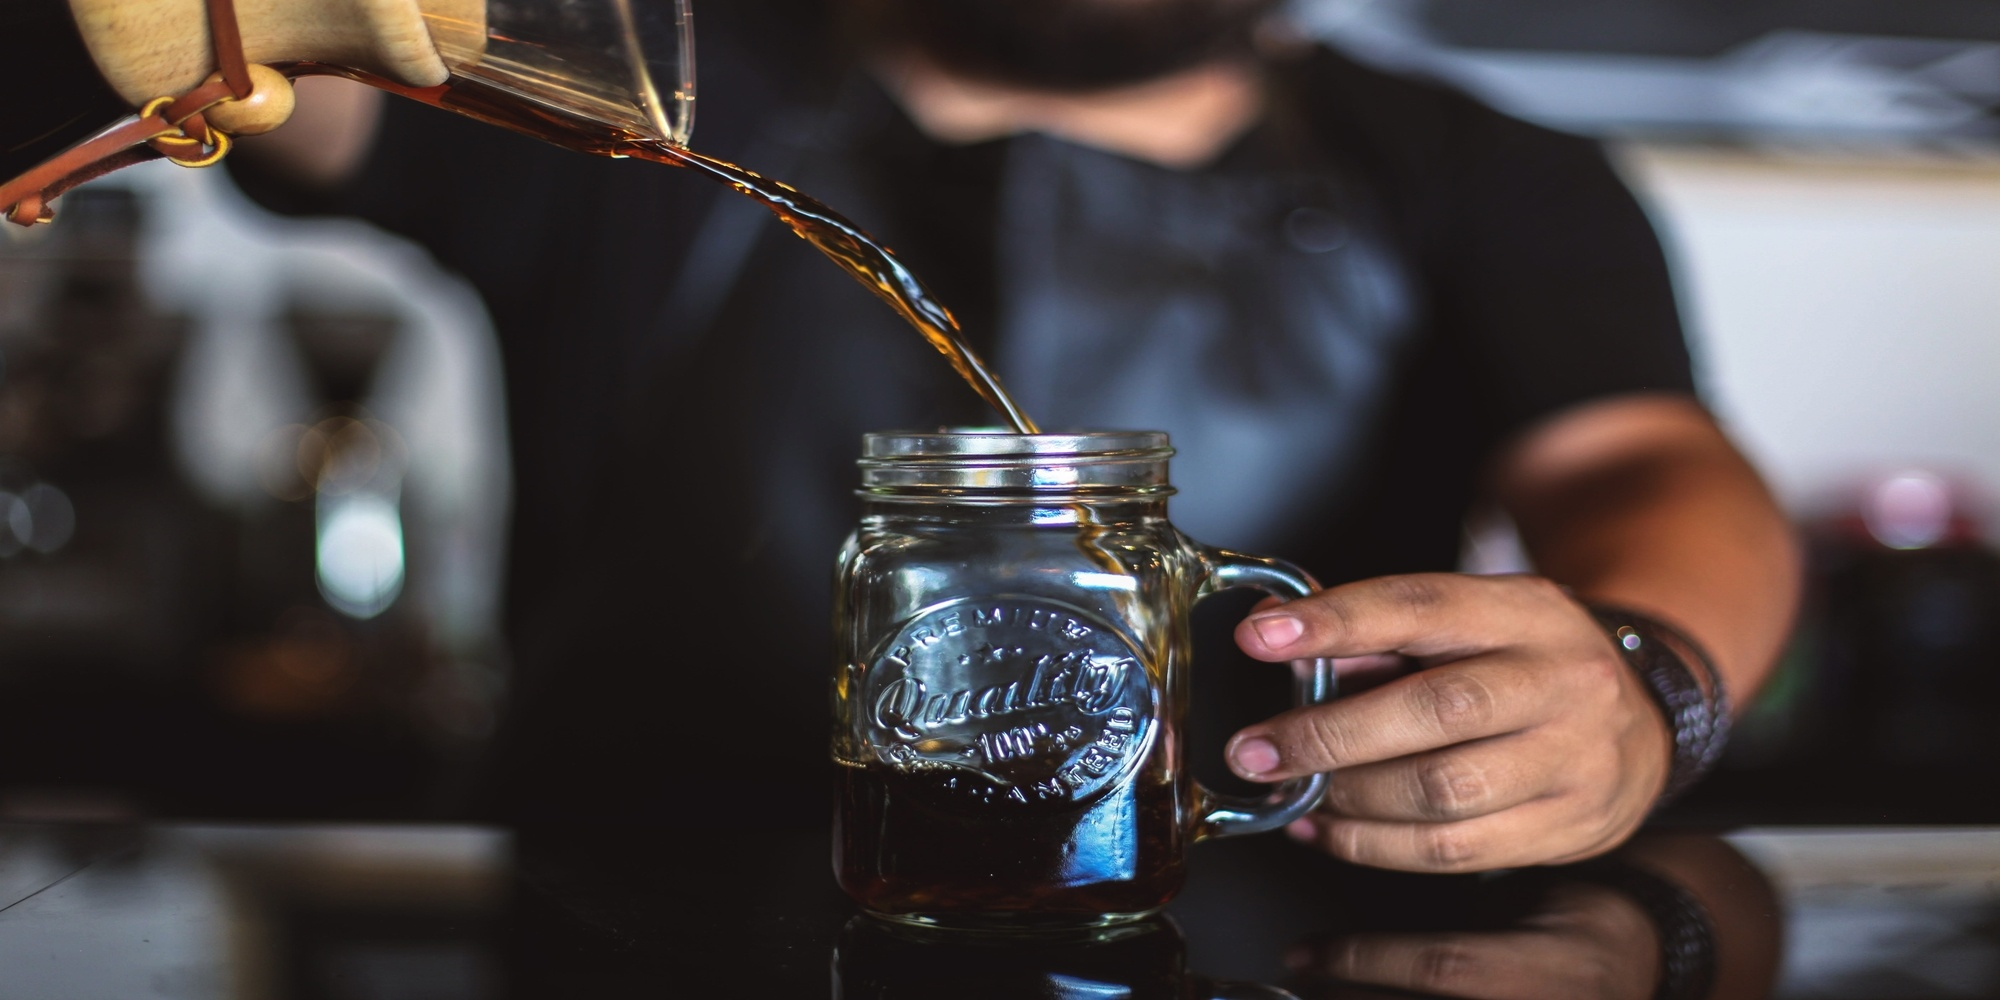 Man pouring specialty cold brew coffee into jar